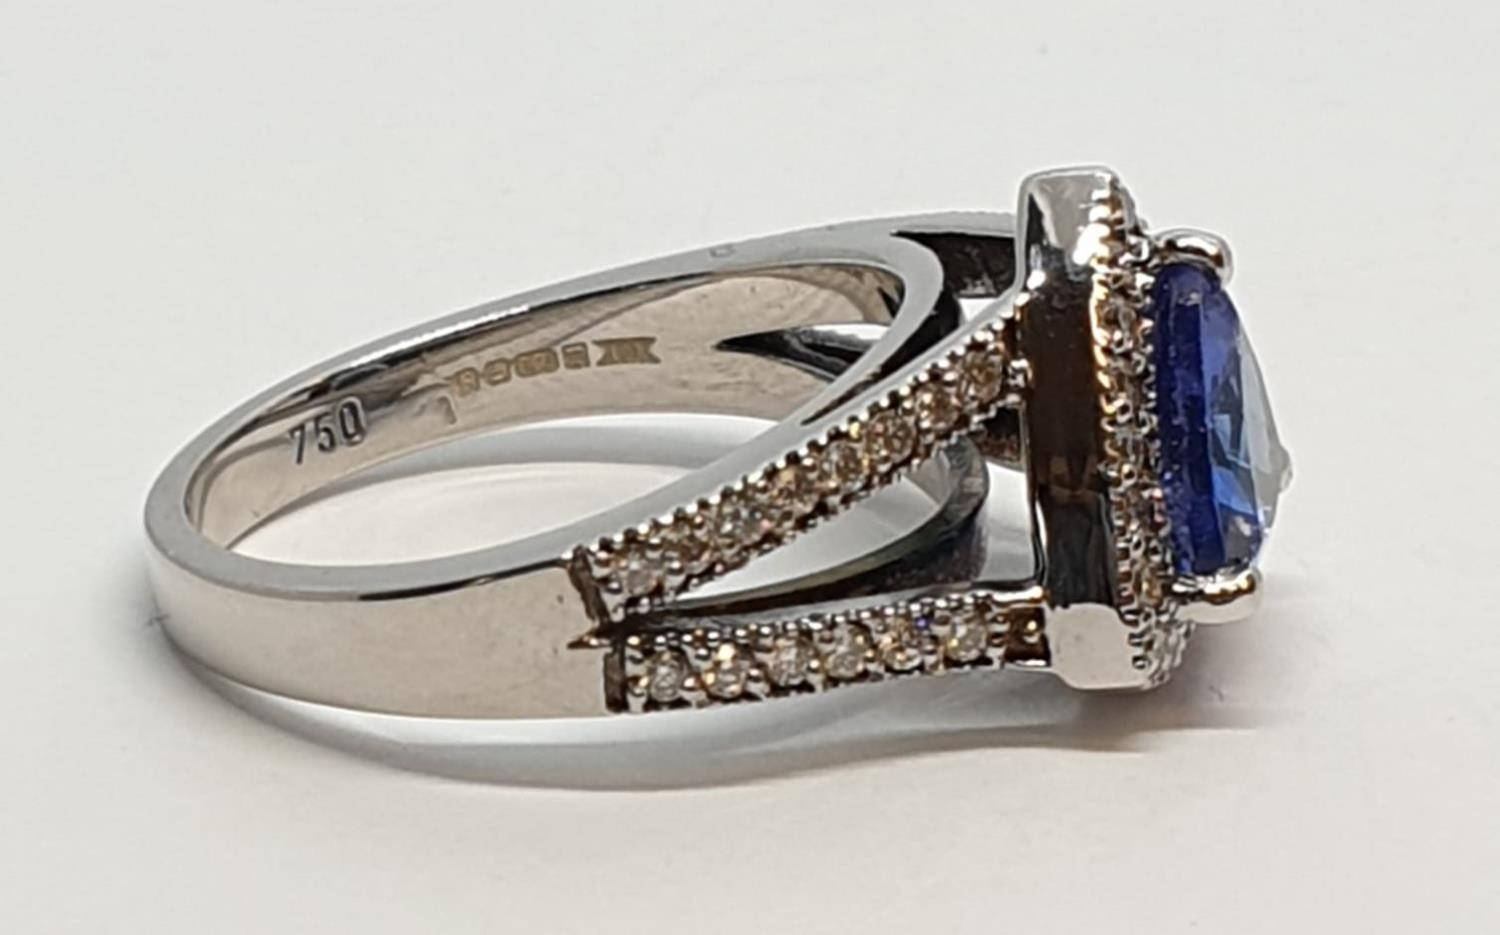 18CT WHITE GOLD RING WITH TRIANGULAR TANZANITE CENTRE AND DIAMONDS ON SHOULDERS, WEIGHT 7G AND - Image 7 of 10